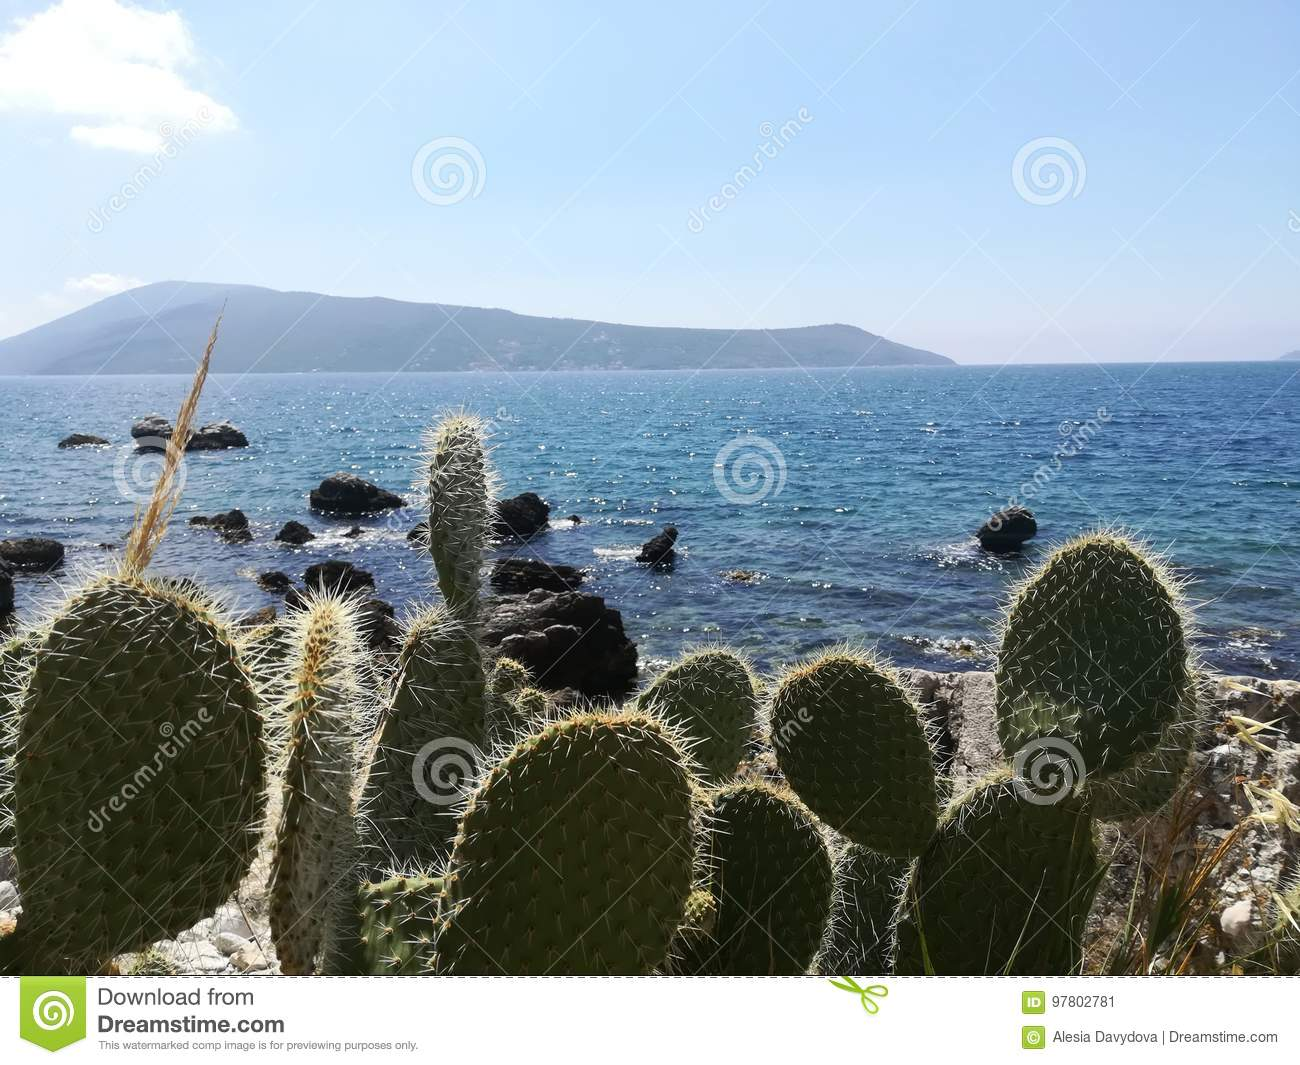 Cacti on the background of the sea and mountains.